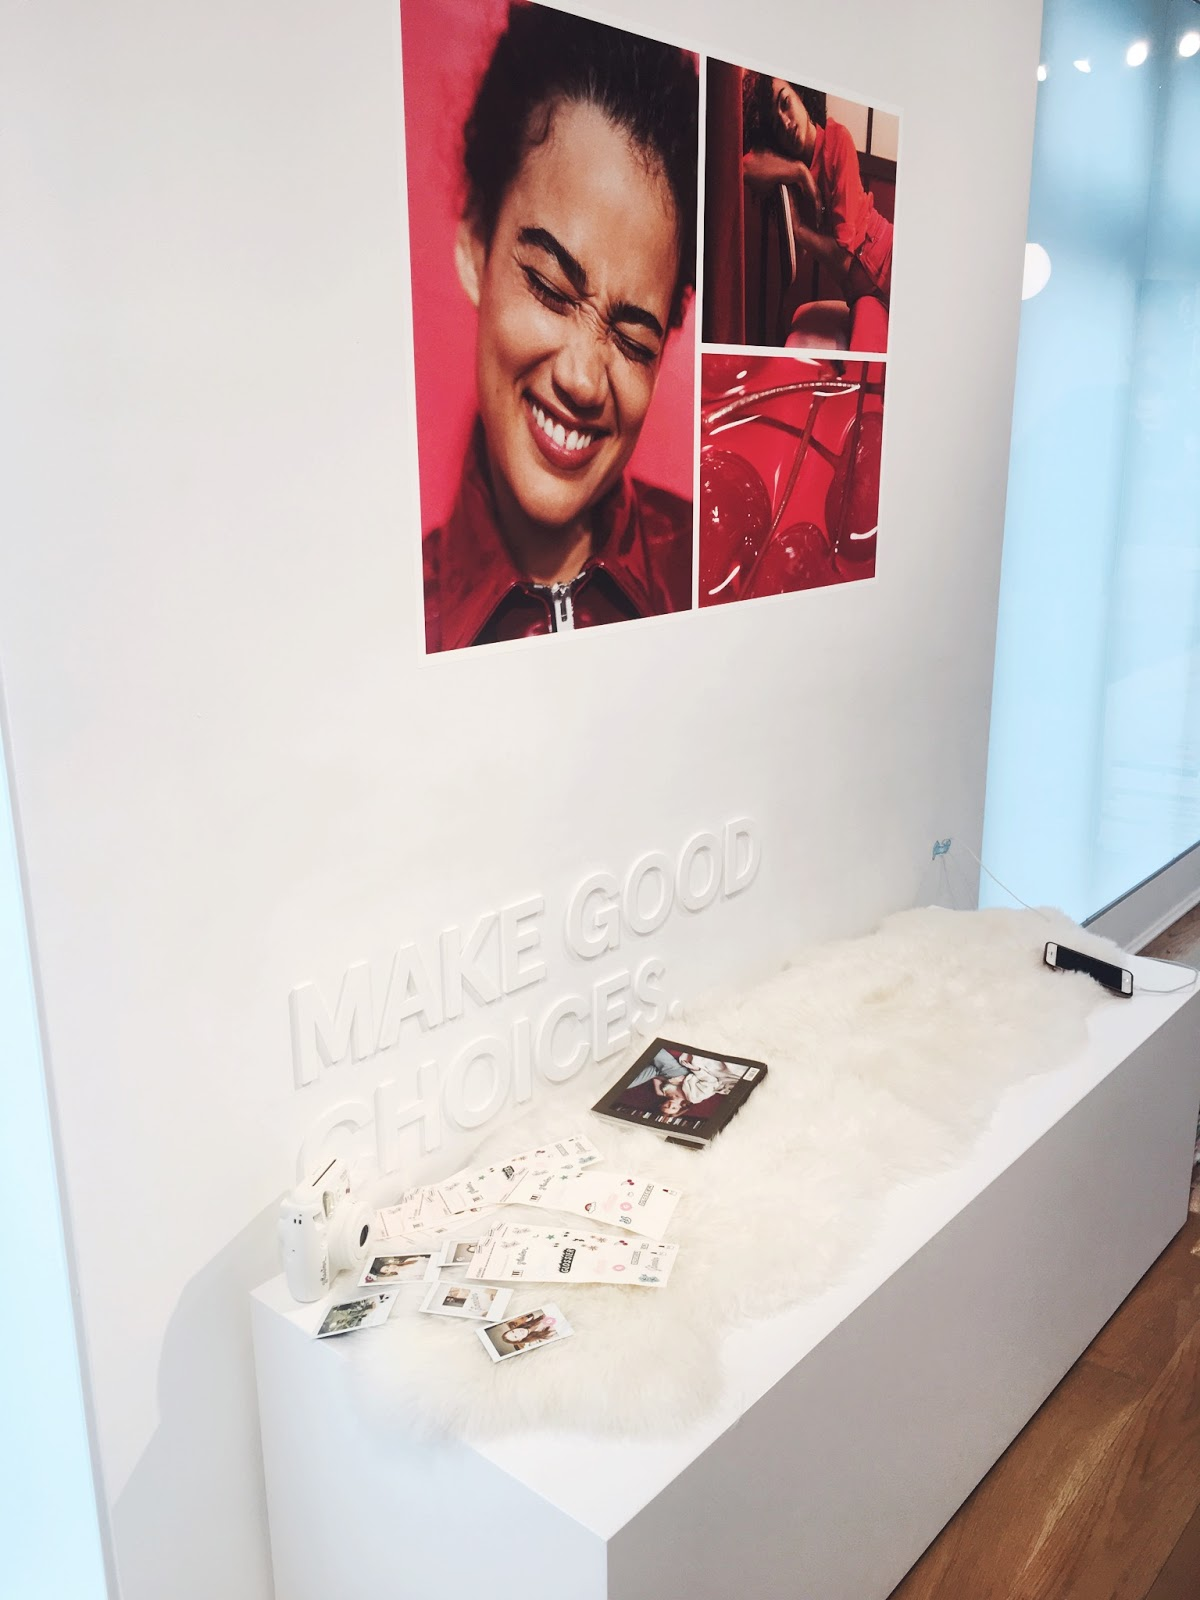 glossier showroom, glossier showroom nyc, glossier new york city showroom, glossier nyc